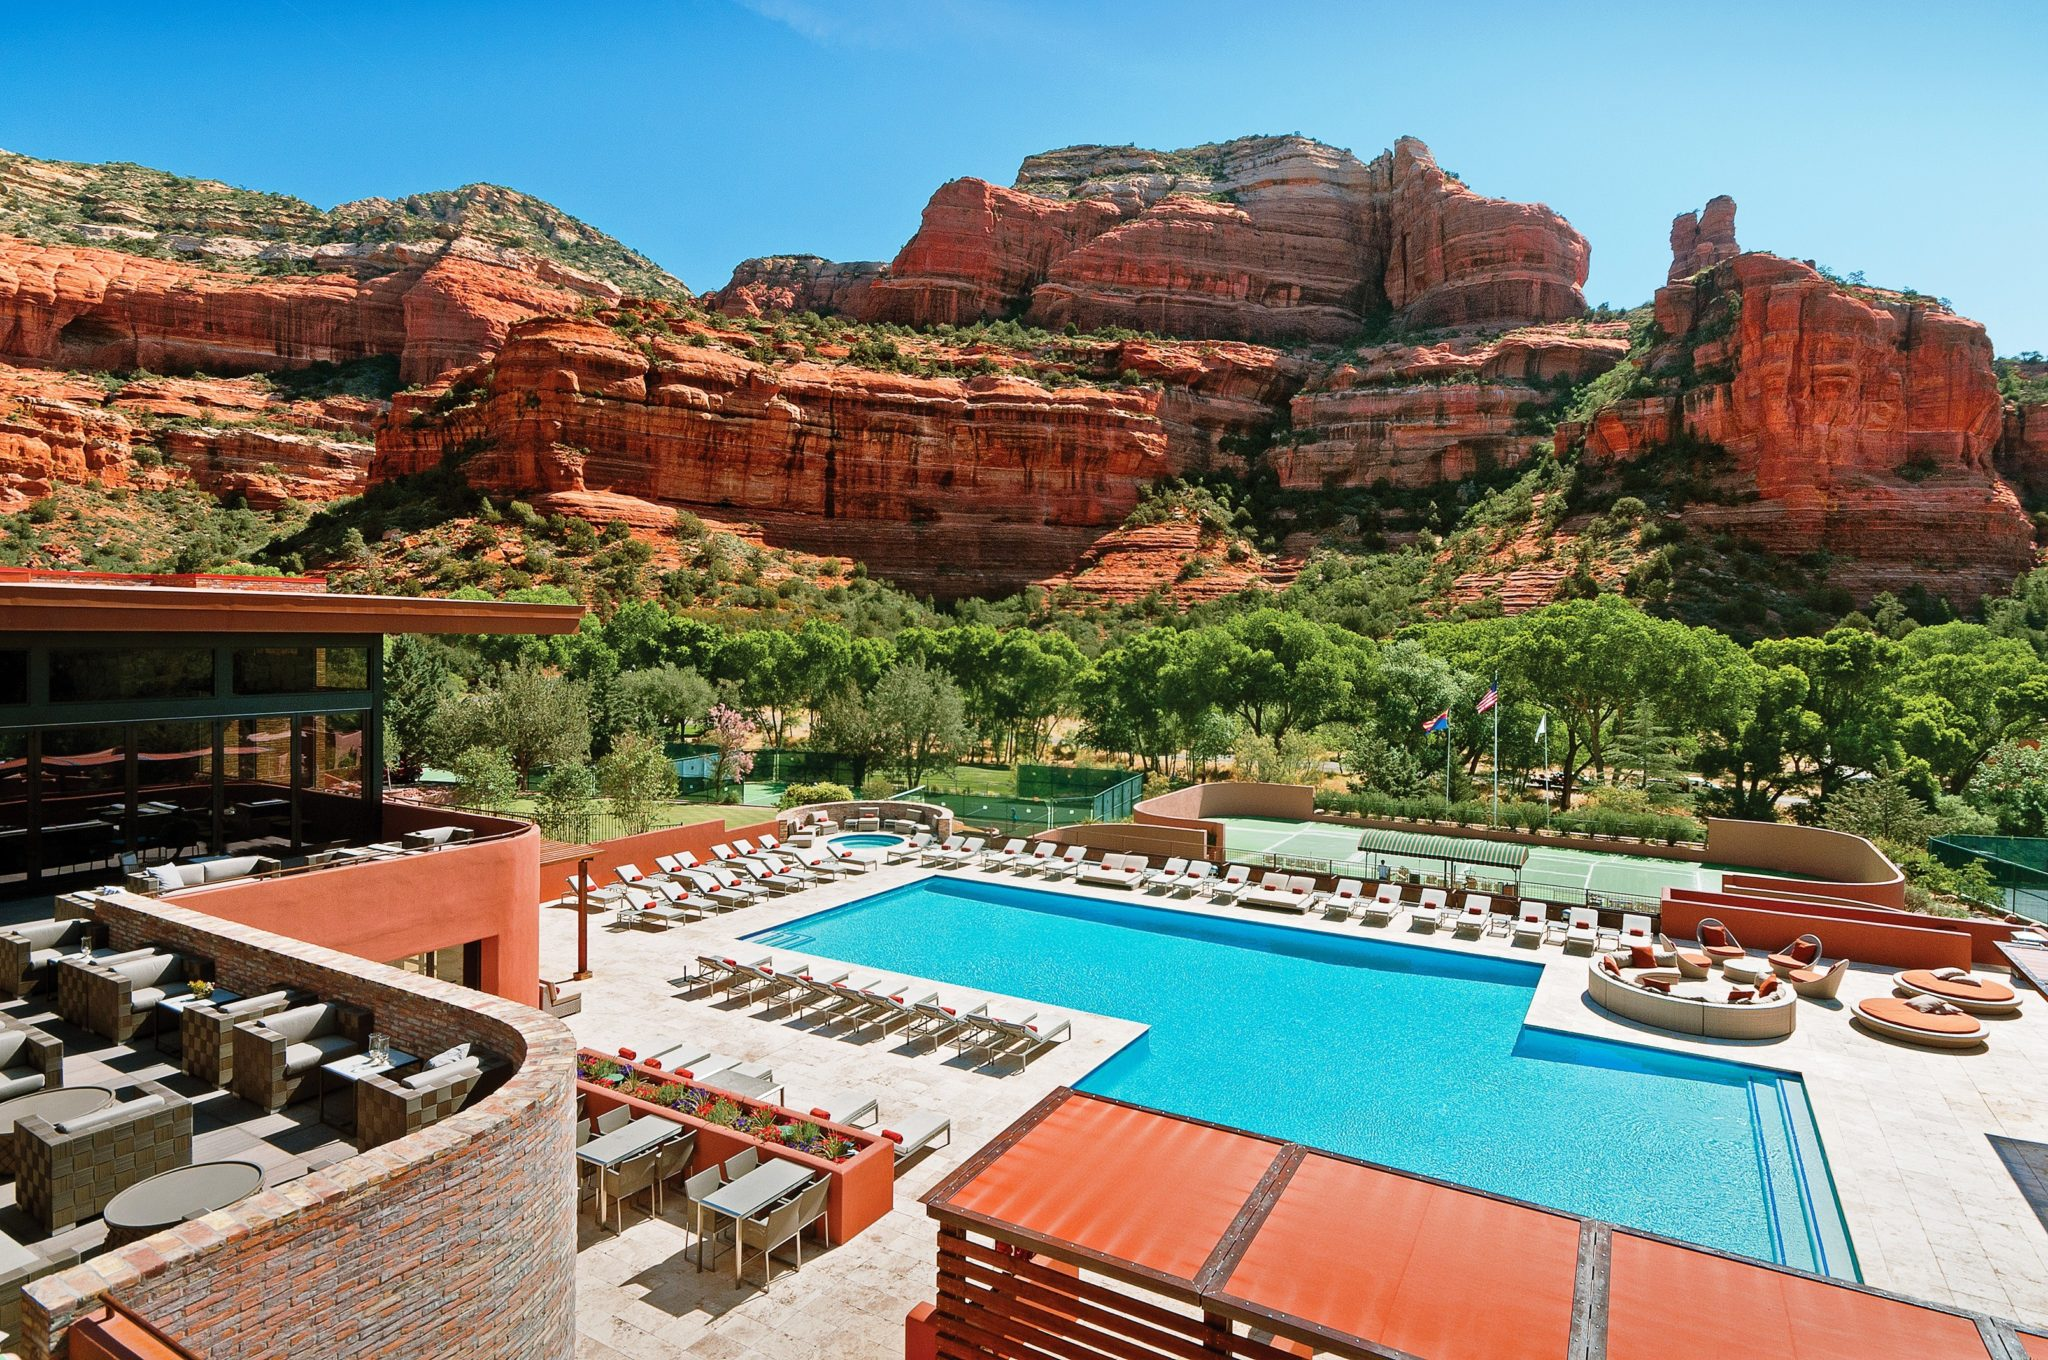 Enchantment Resort | Pool view